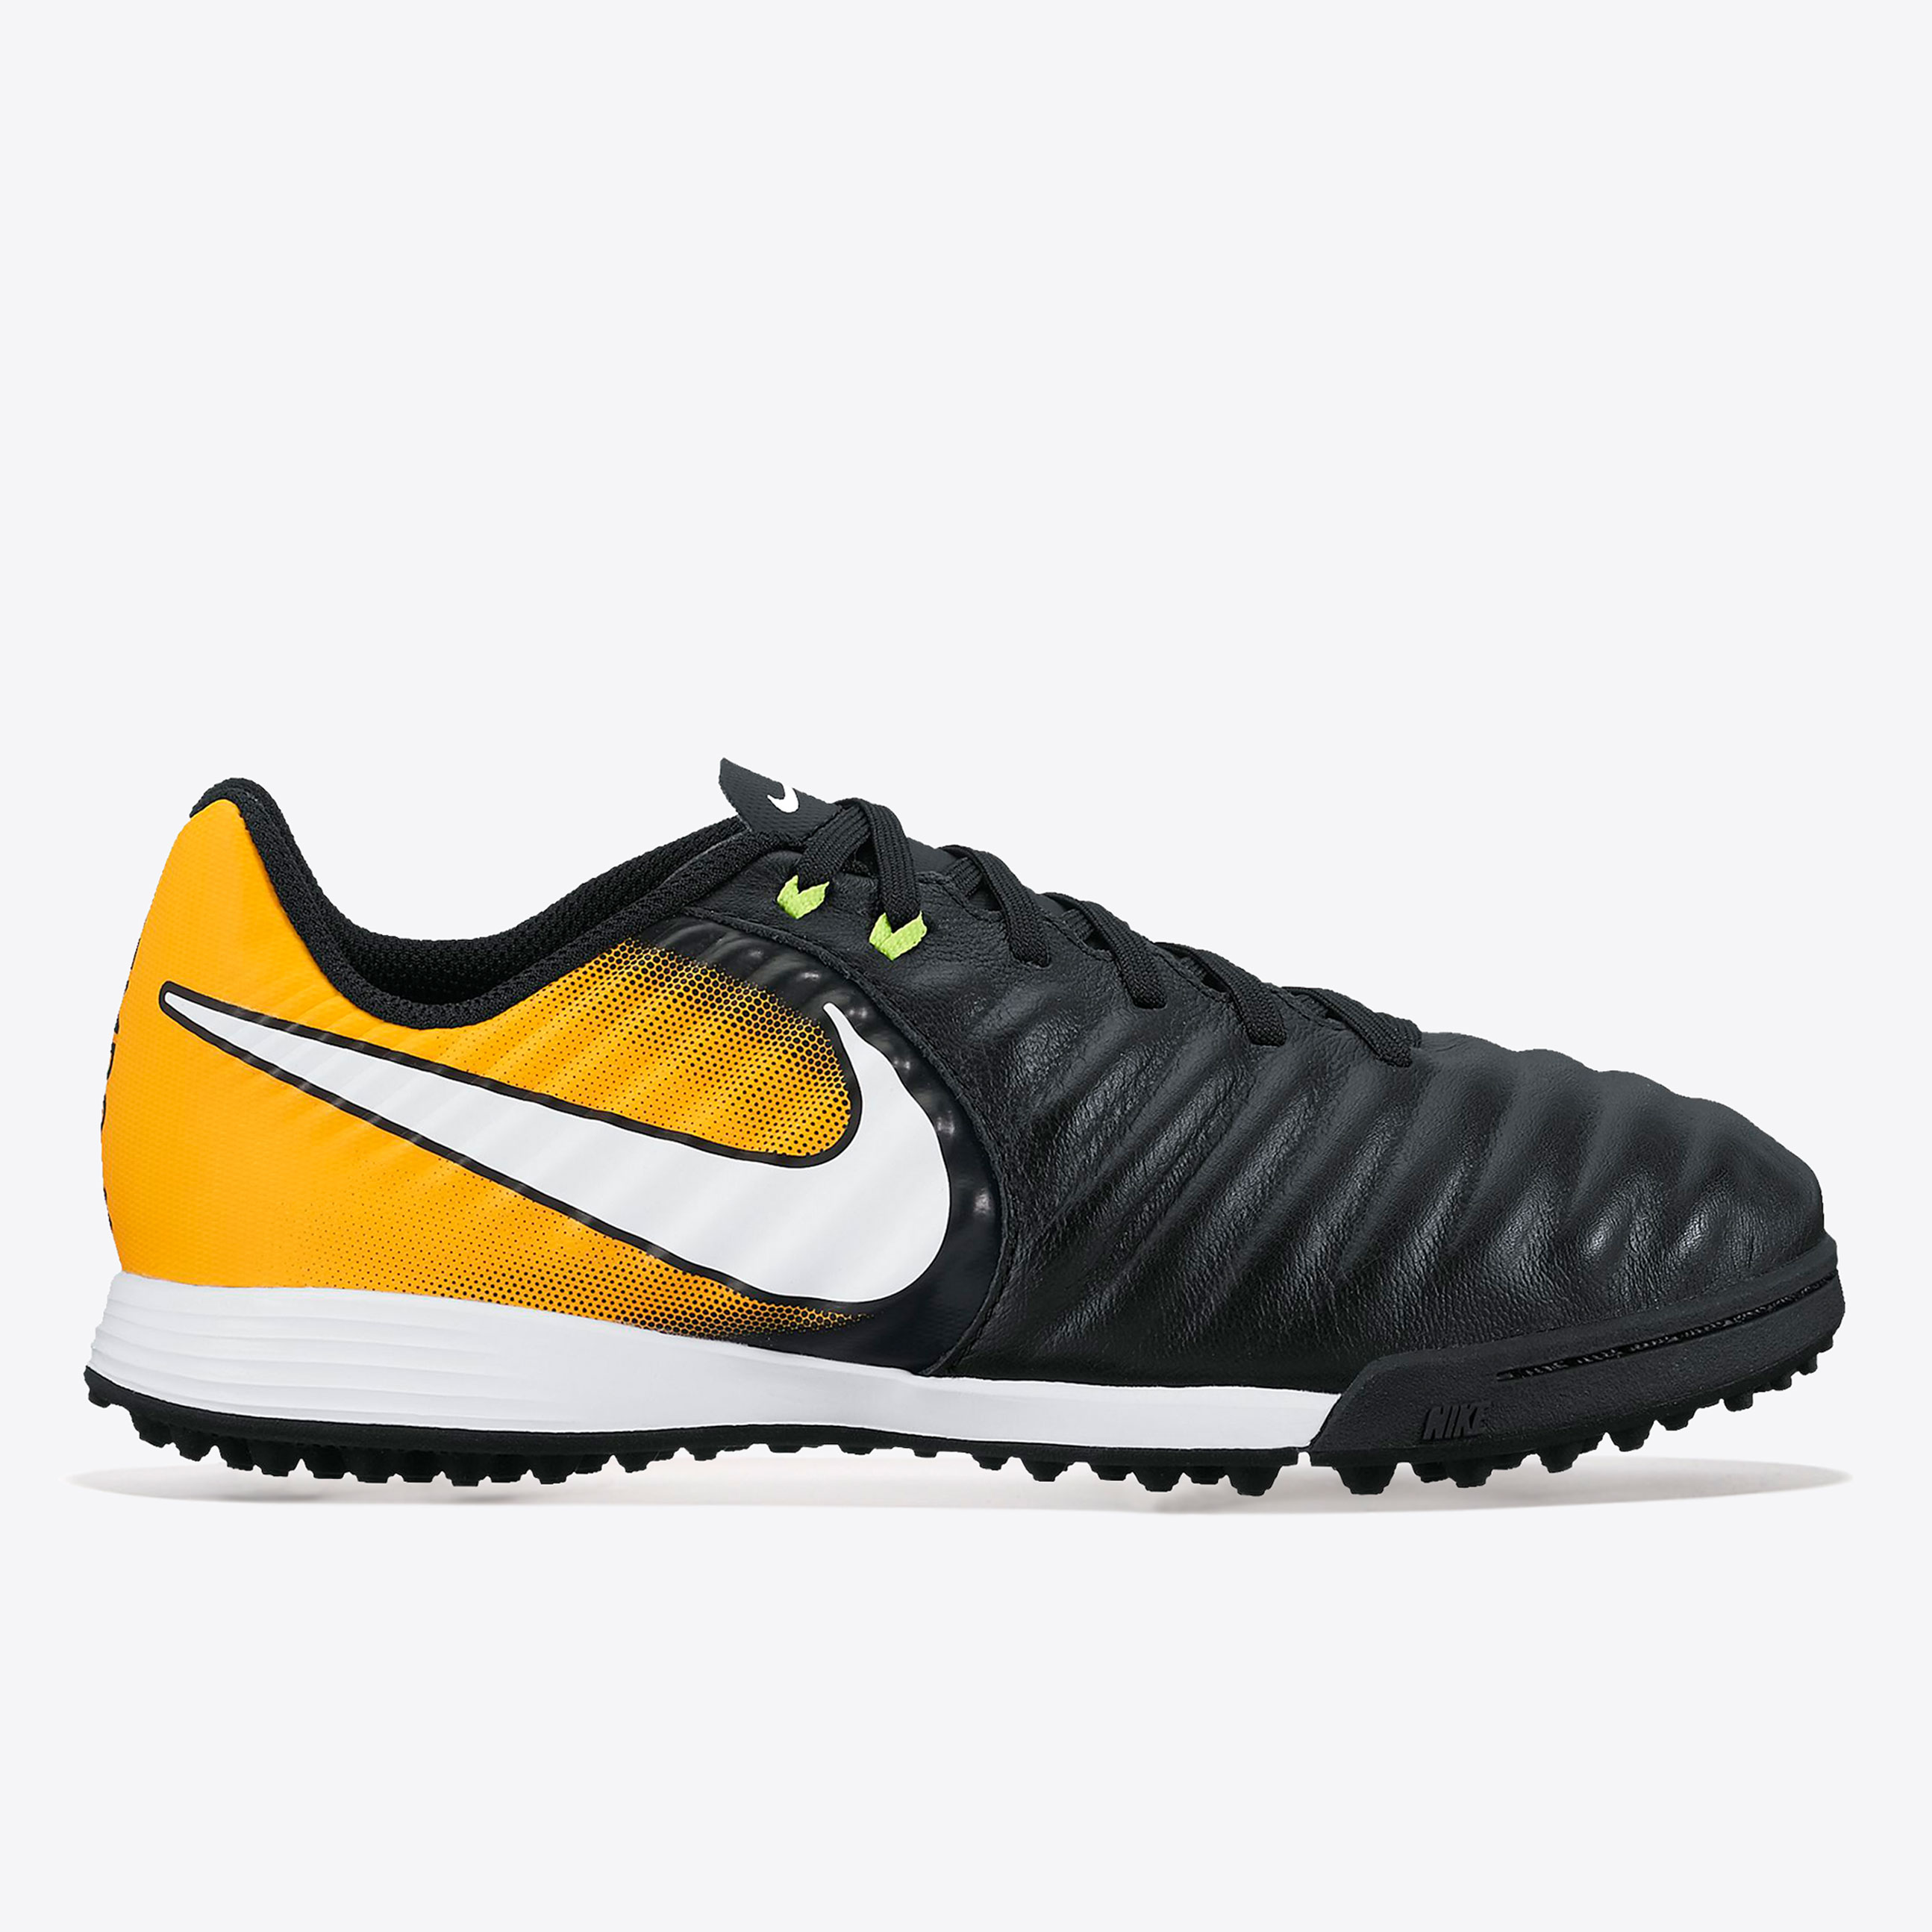 Nike Tiempo Ligera IV Astroturf Trainers - Black/White/Laser Orange/Vo